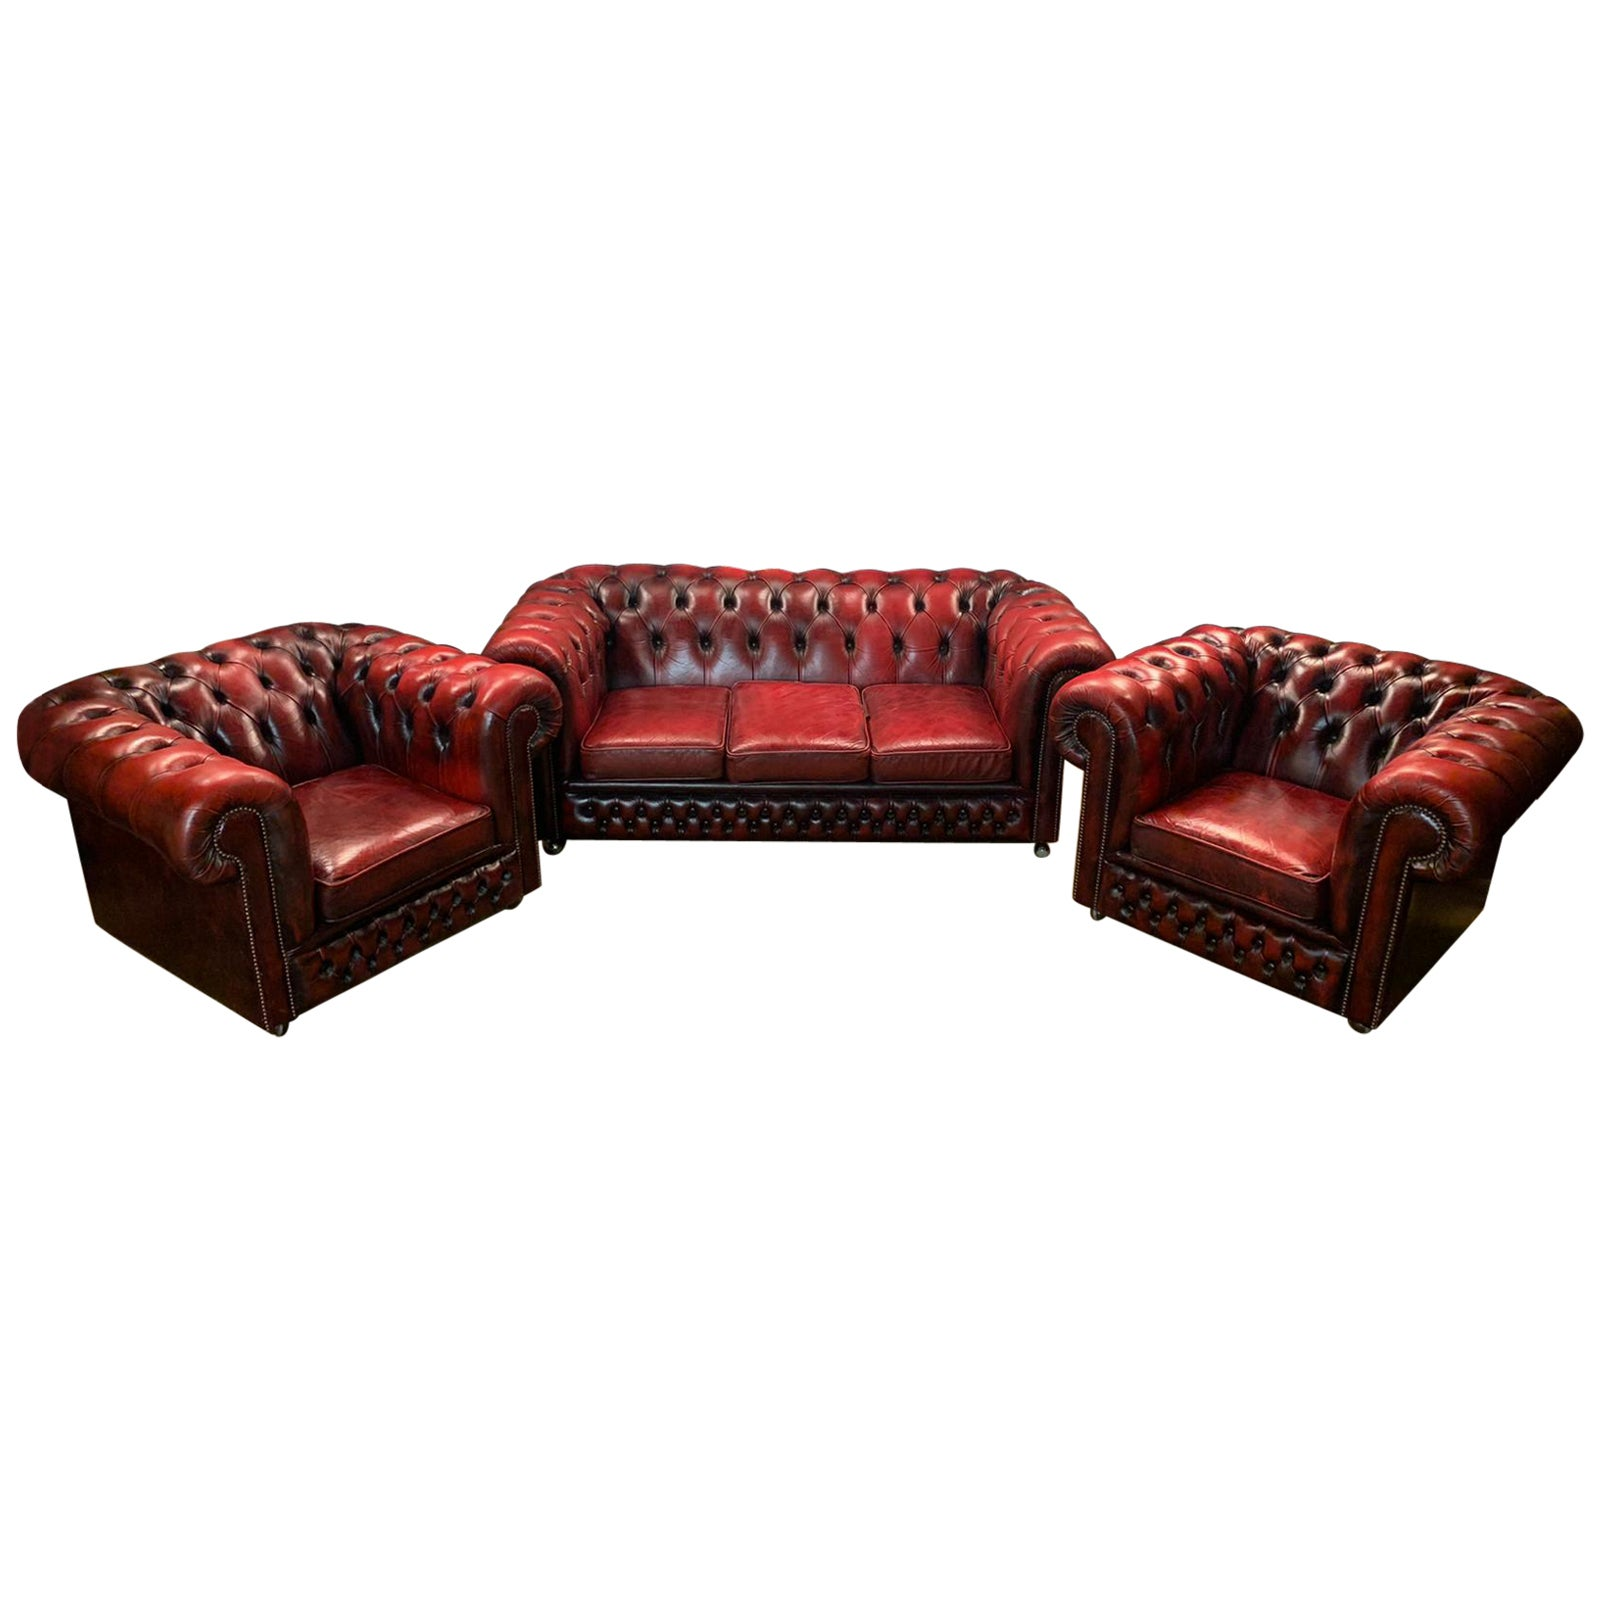 Original Chesterfield Set Three-Seat Sofa and 2 Armchairs in Bordeaux